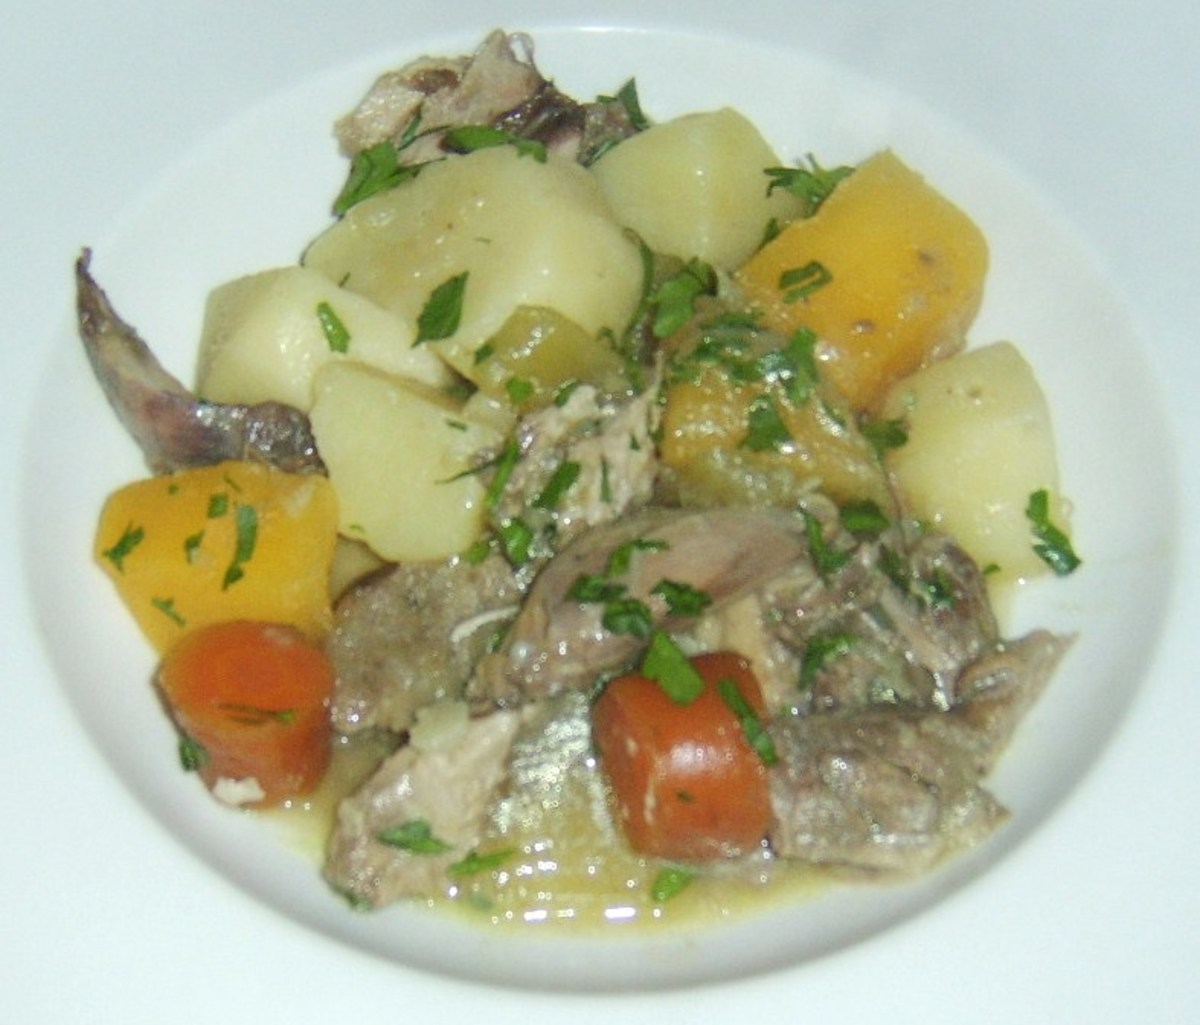 A single serving of rabbit, lamb and root vegetable stew